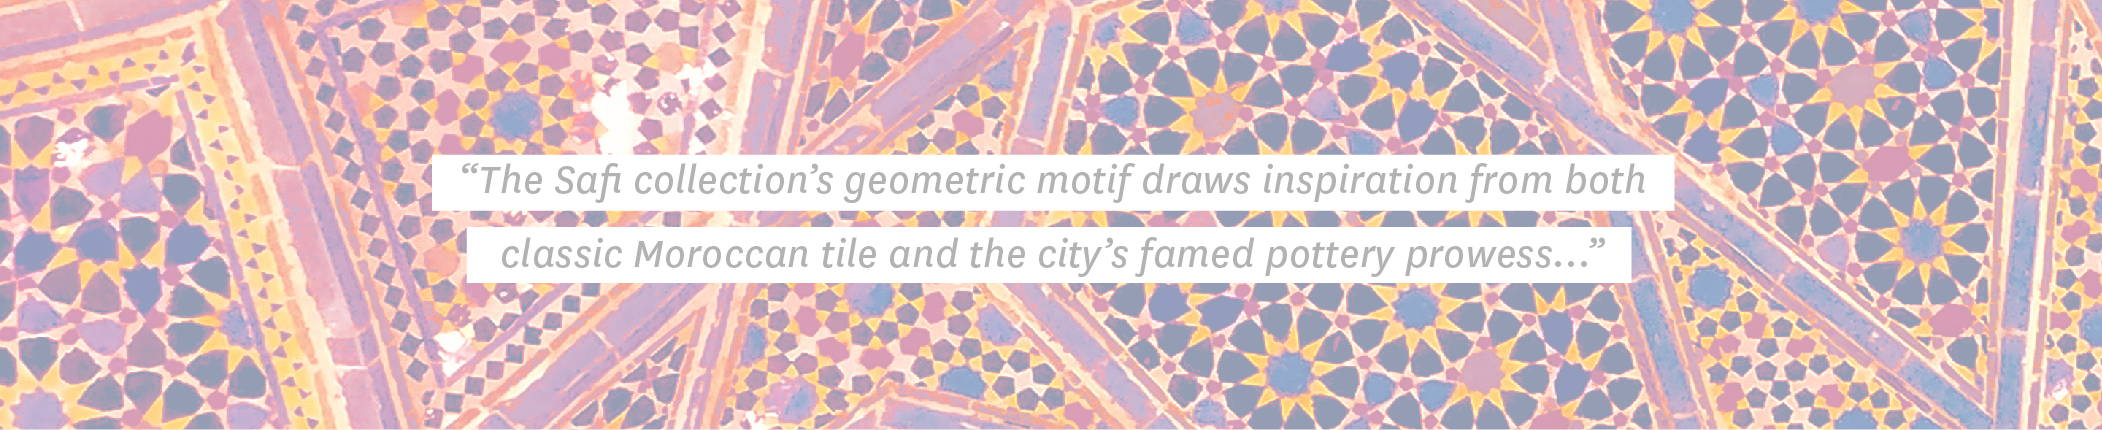 "Quote: ""The Safi collection's geometric motif draws inspiration from both classic Moroccan tile and the city's famed pottery prowess..."""